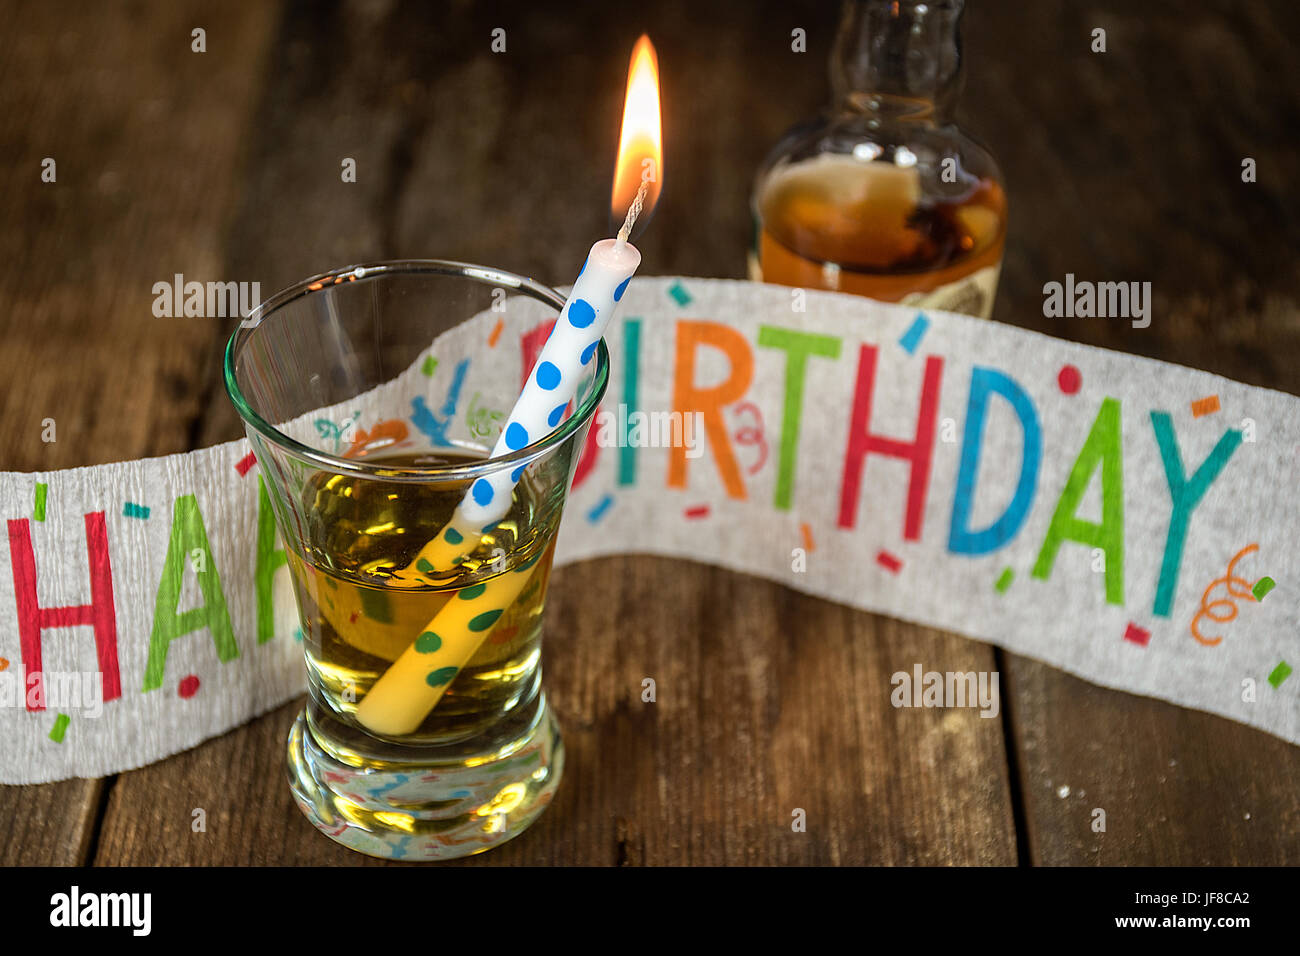 Birthday Candle With Whiskey In Shot Glass And Banner On Rustic Wood